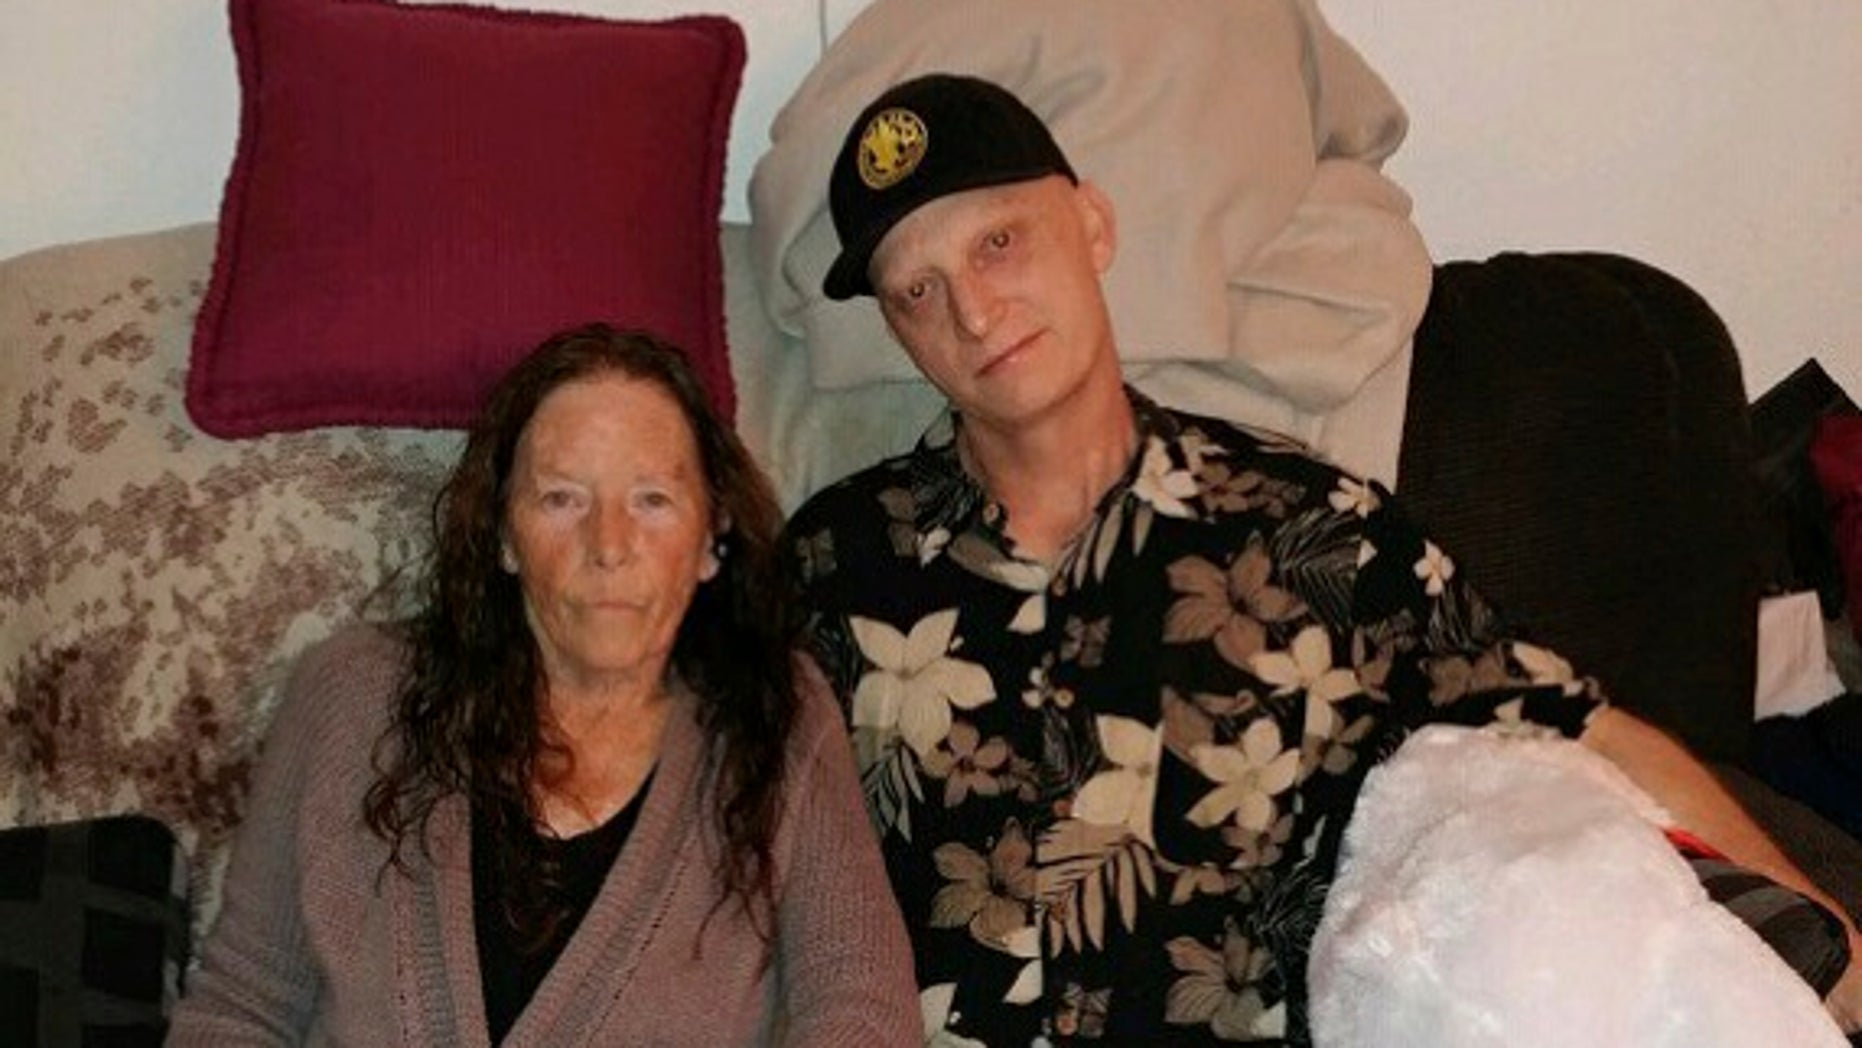 Michael R. White, right, is seen with his mother, Joanne White, in 2018. White, a U.S. Navy veteran from California, has been sentenced to 10 years in prison in Iran, his lawyer said Saturday, March 16, 2019. (White family via Associated Press)